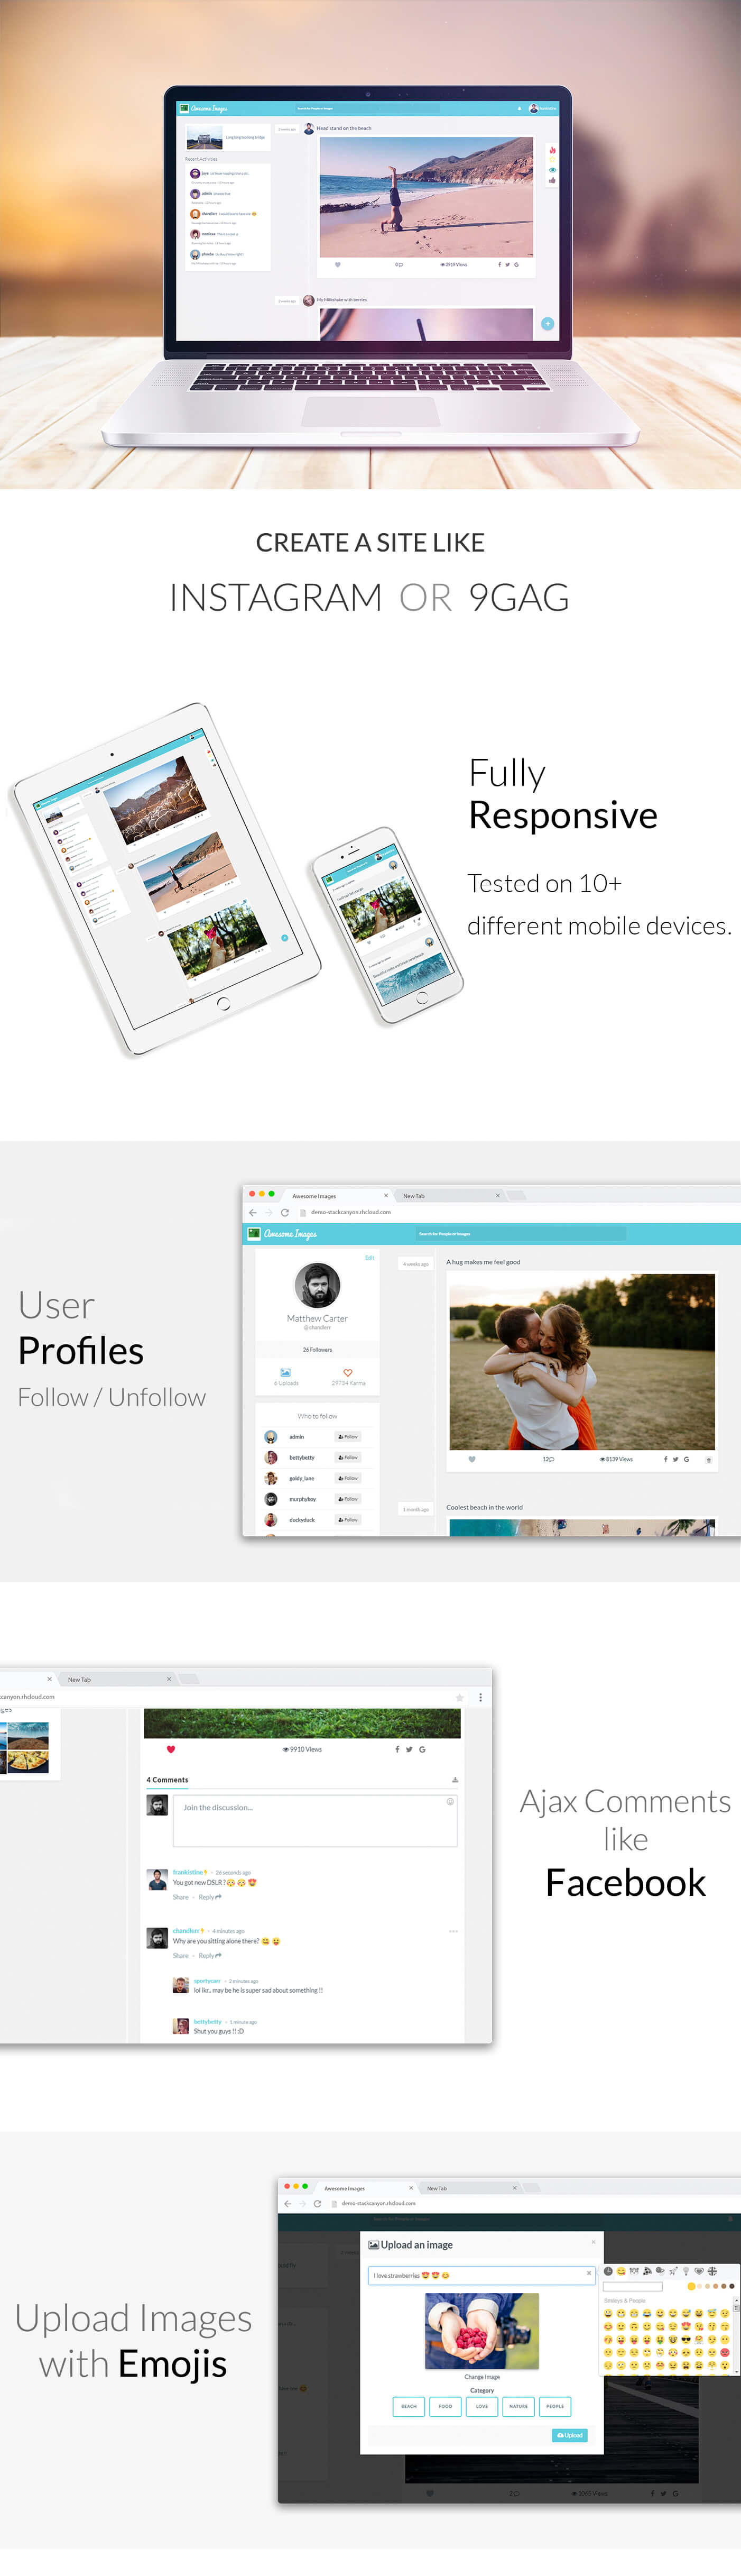 Awesome Images : Photo Sharing Platform - Supports GIFs and Social Login - 1